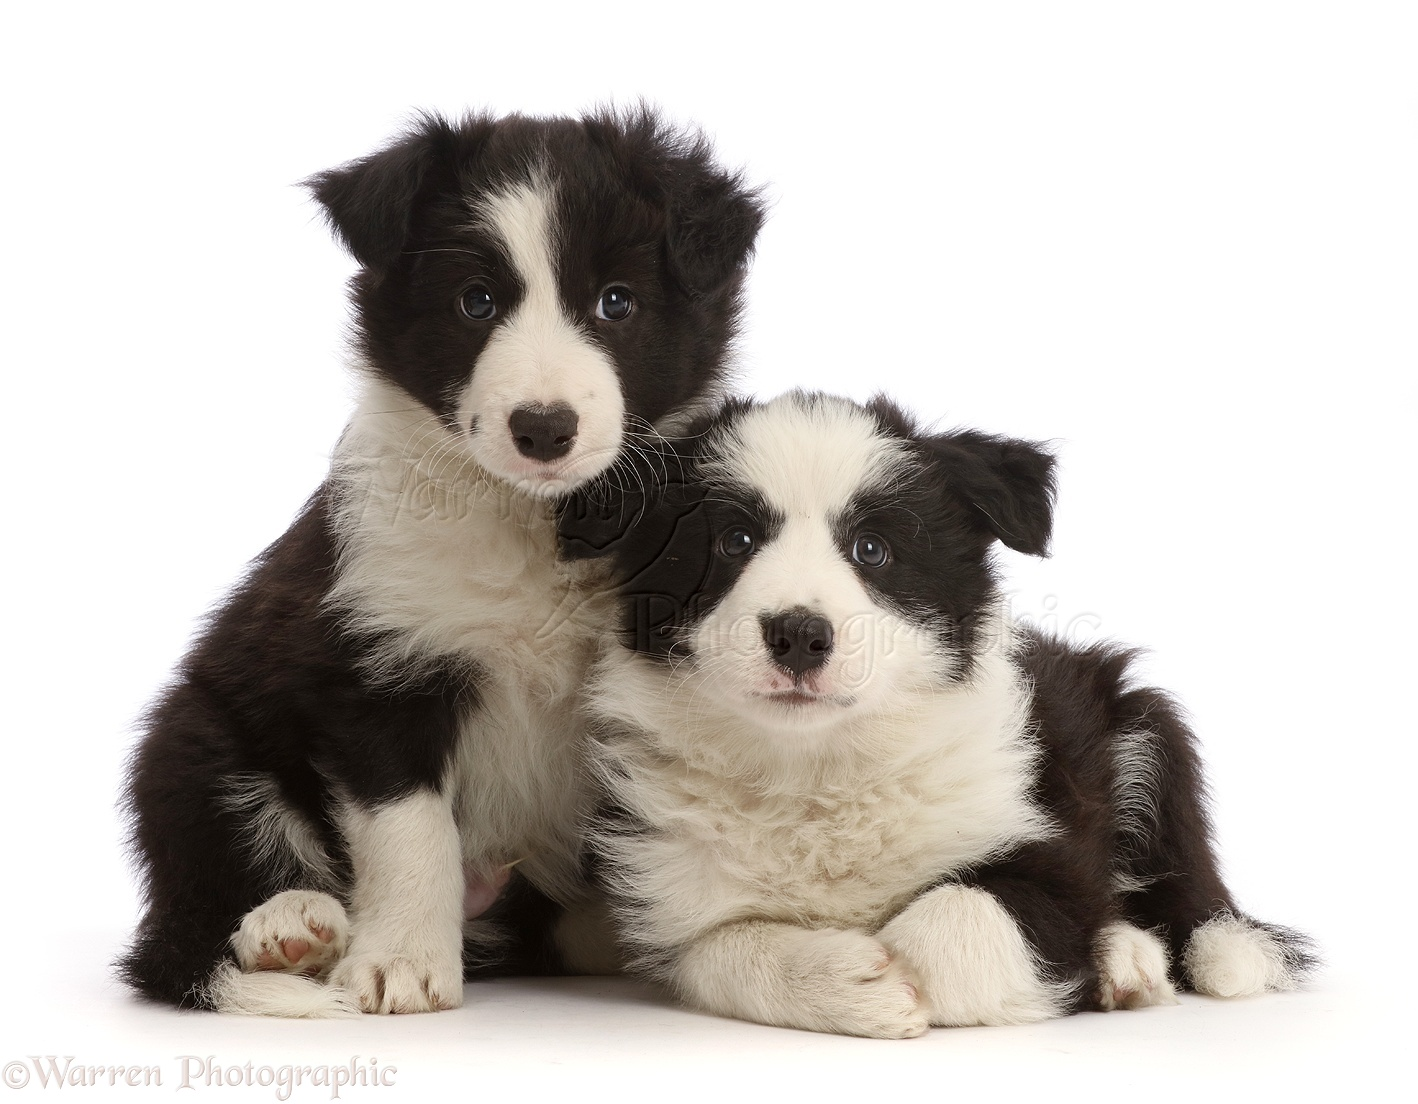 Wp45315 two black and white border collie puppies 7 weeks old